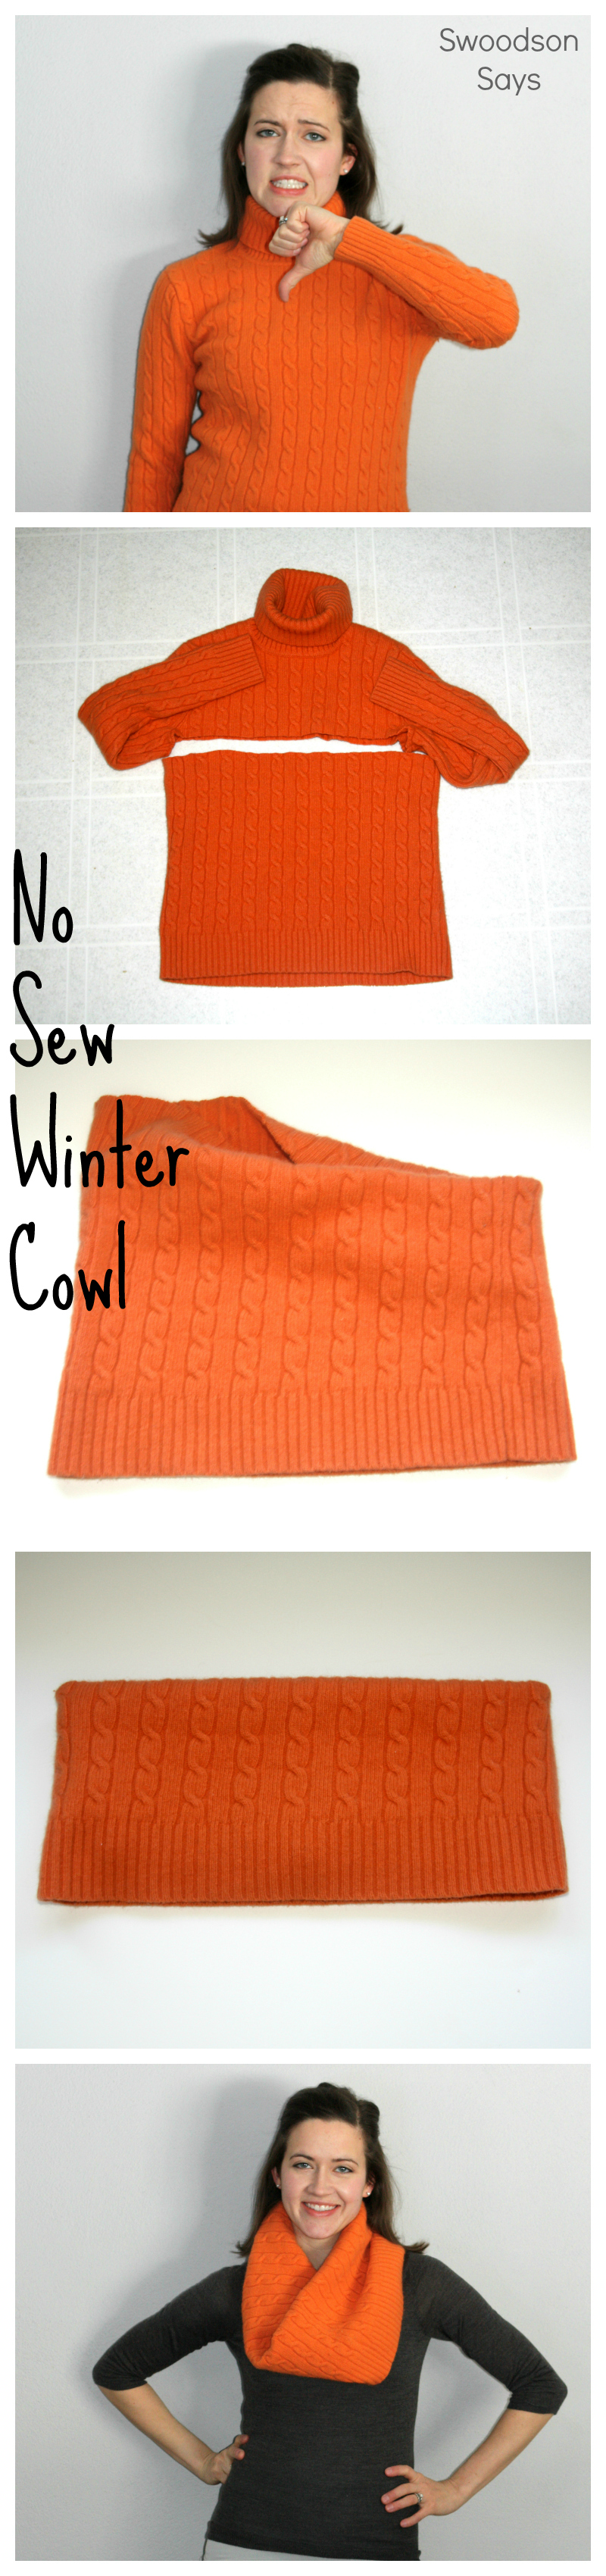 No Sew Winter Cowl .jpg